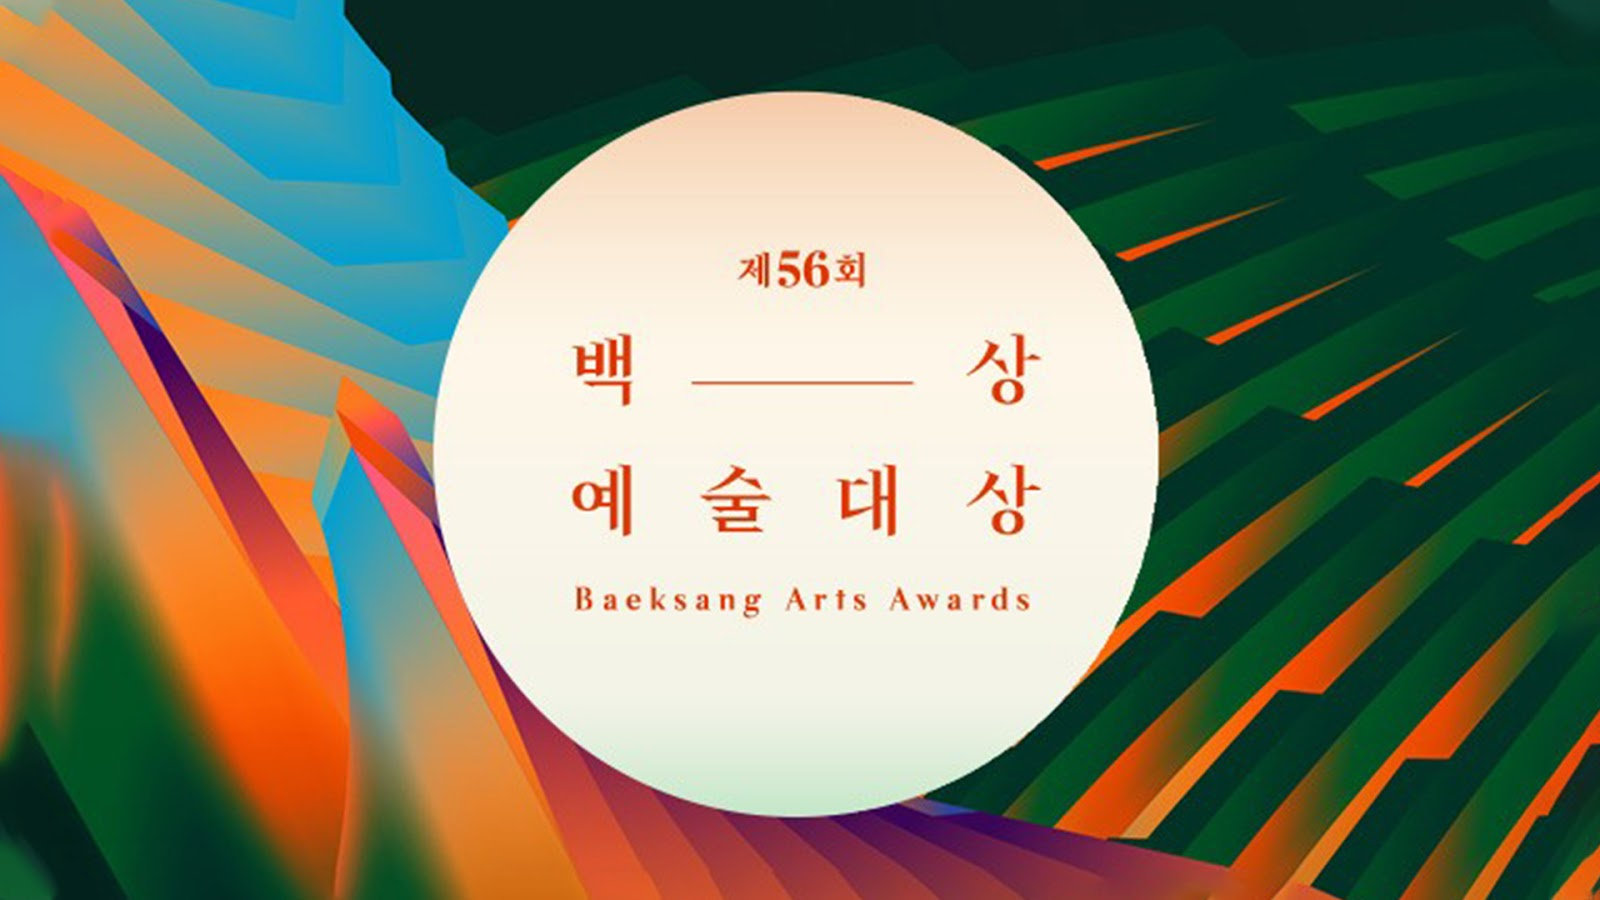 '56th Baeksang Arts Awards' Event Ends, Here's the List of Winners!